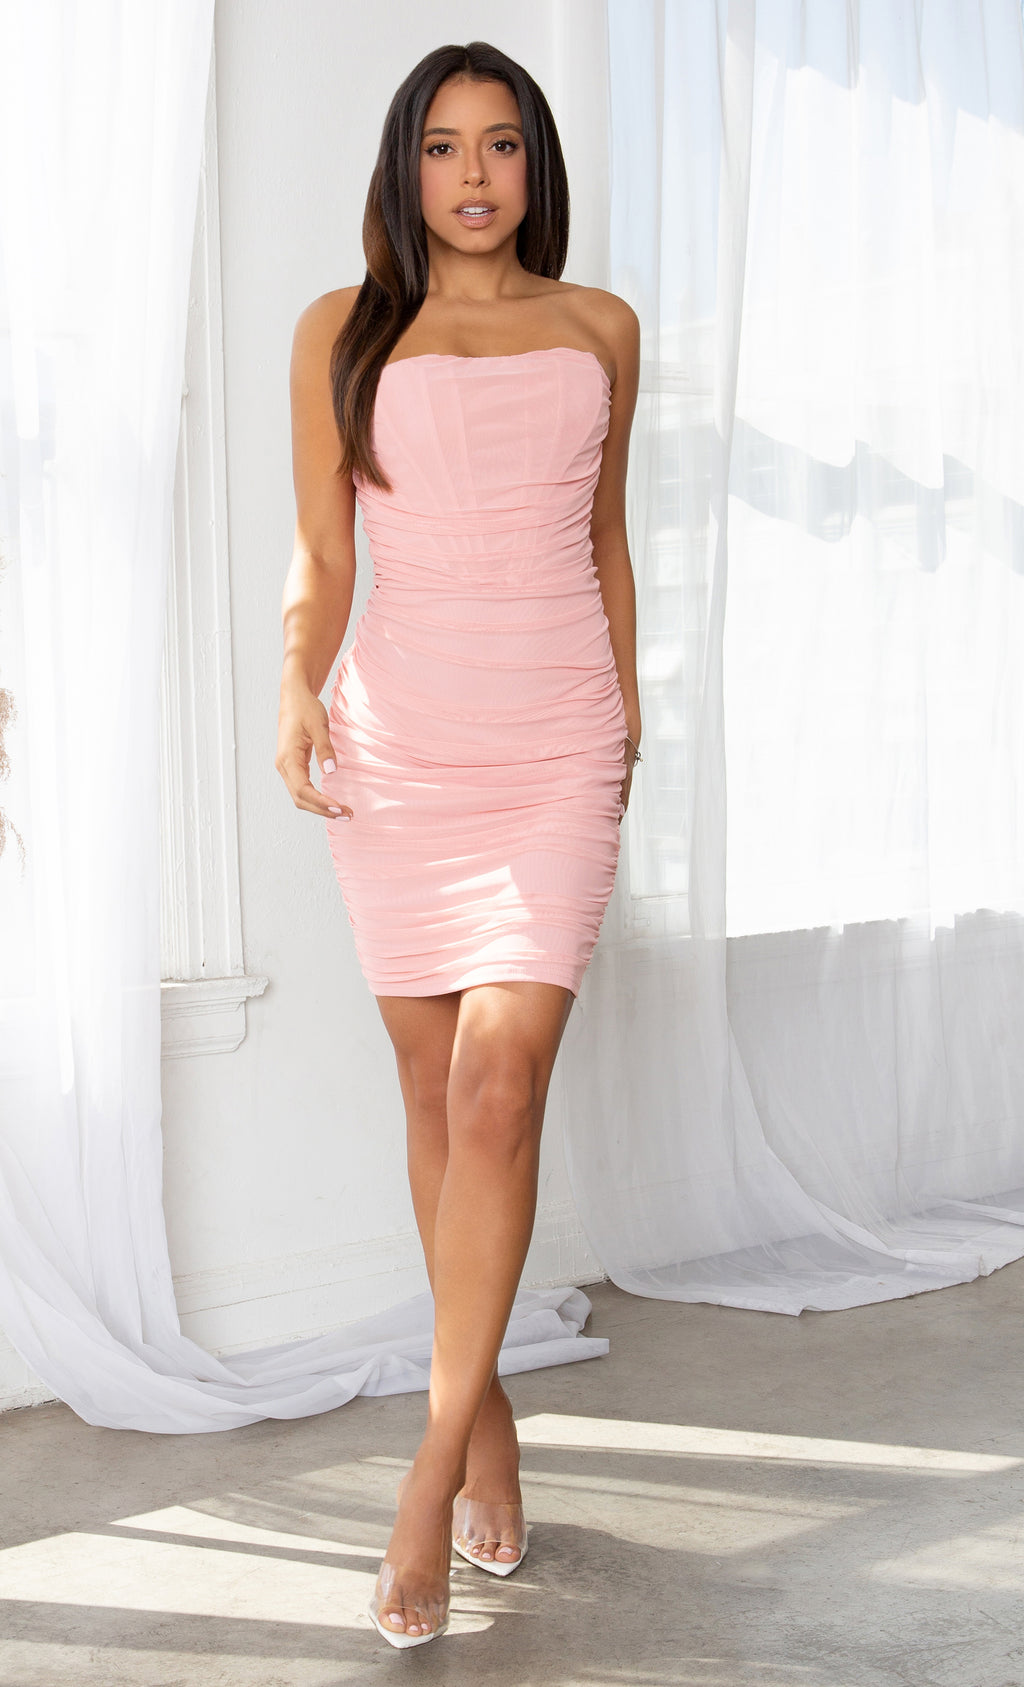 Night Prowl Apricot Pink Sheer Mesh Strapless Scoop Neck Ruched Bodycon Mini Dress